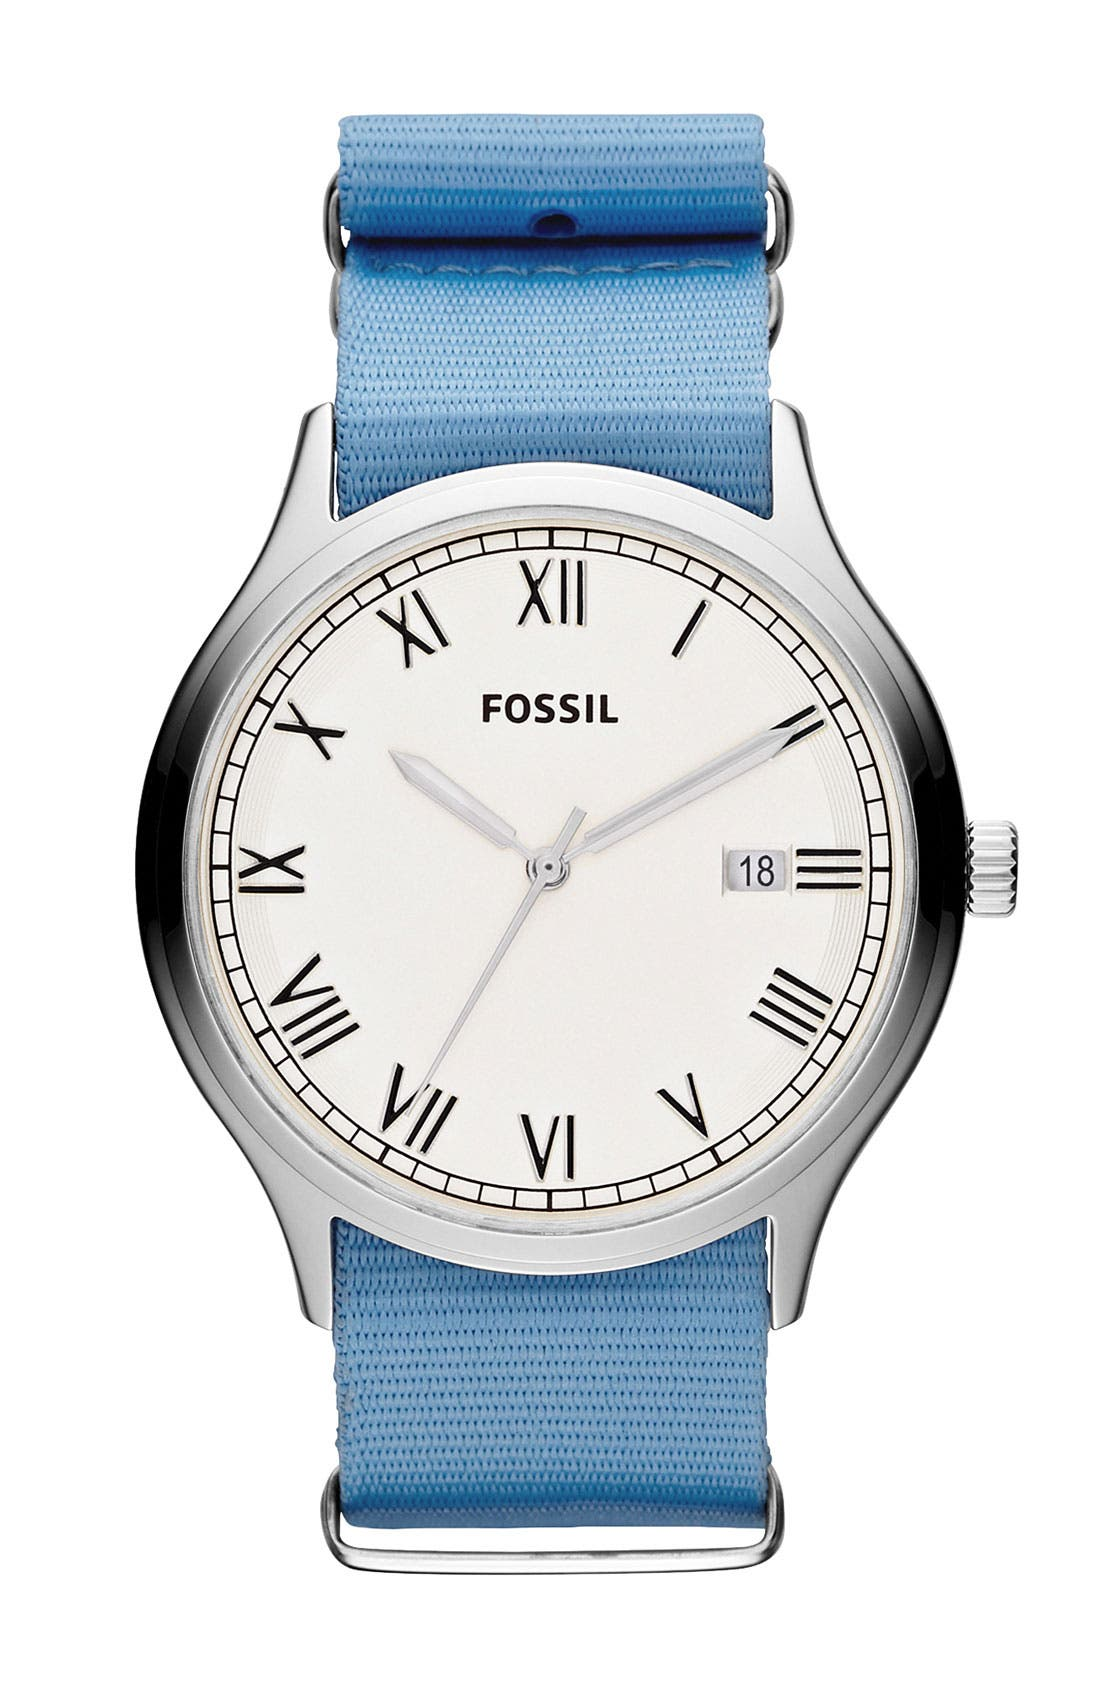 Main Image - Fossil 'Ansel' Nylon Strap Watch, 41mm